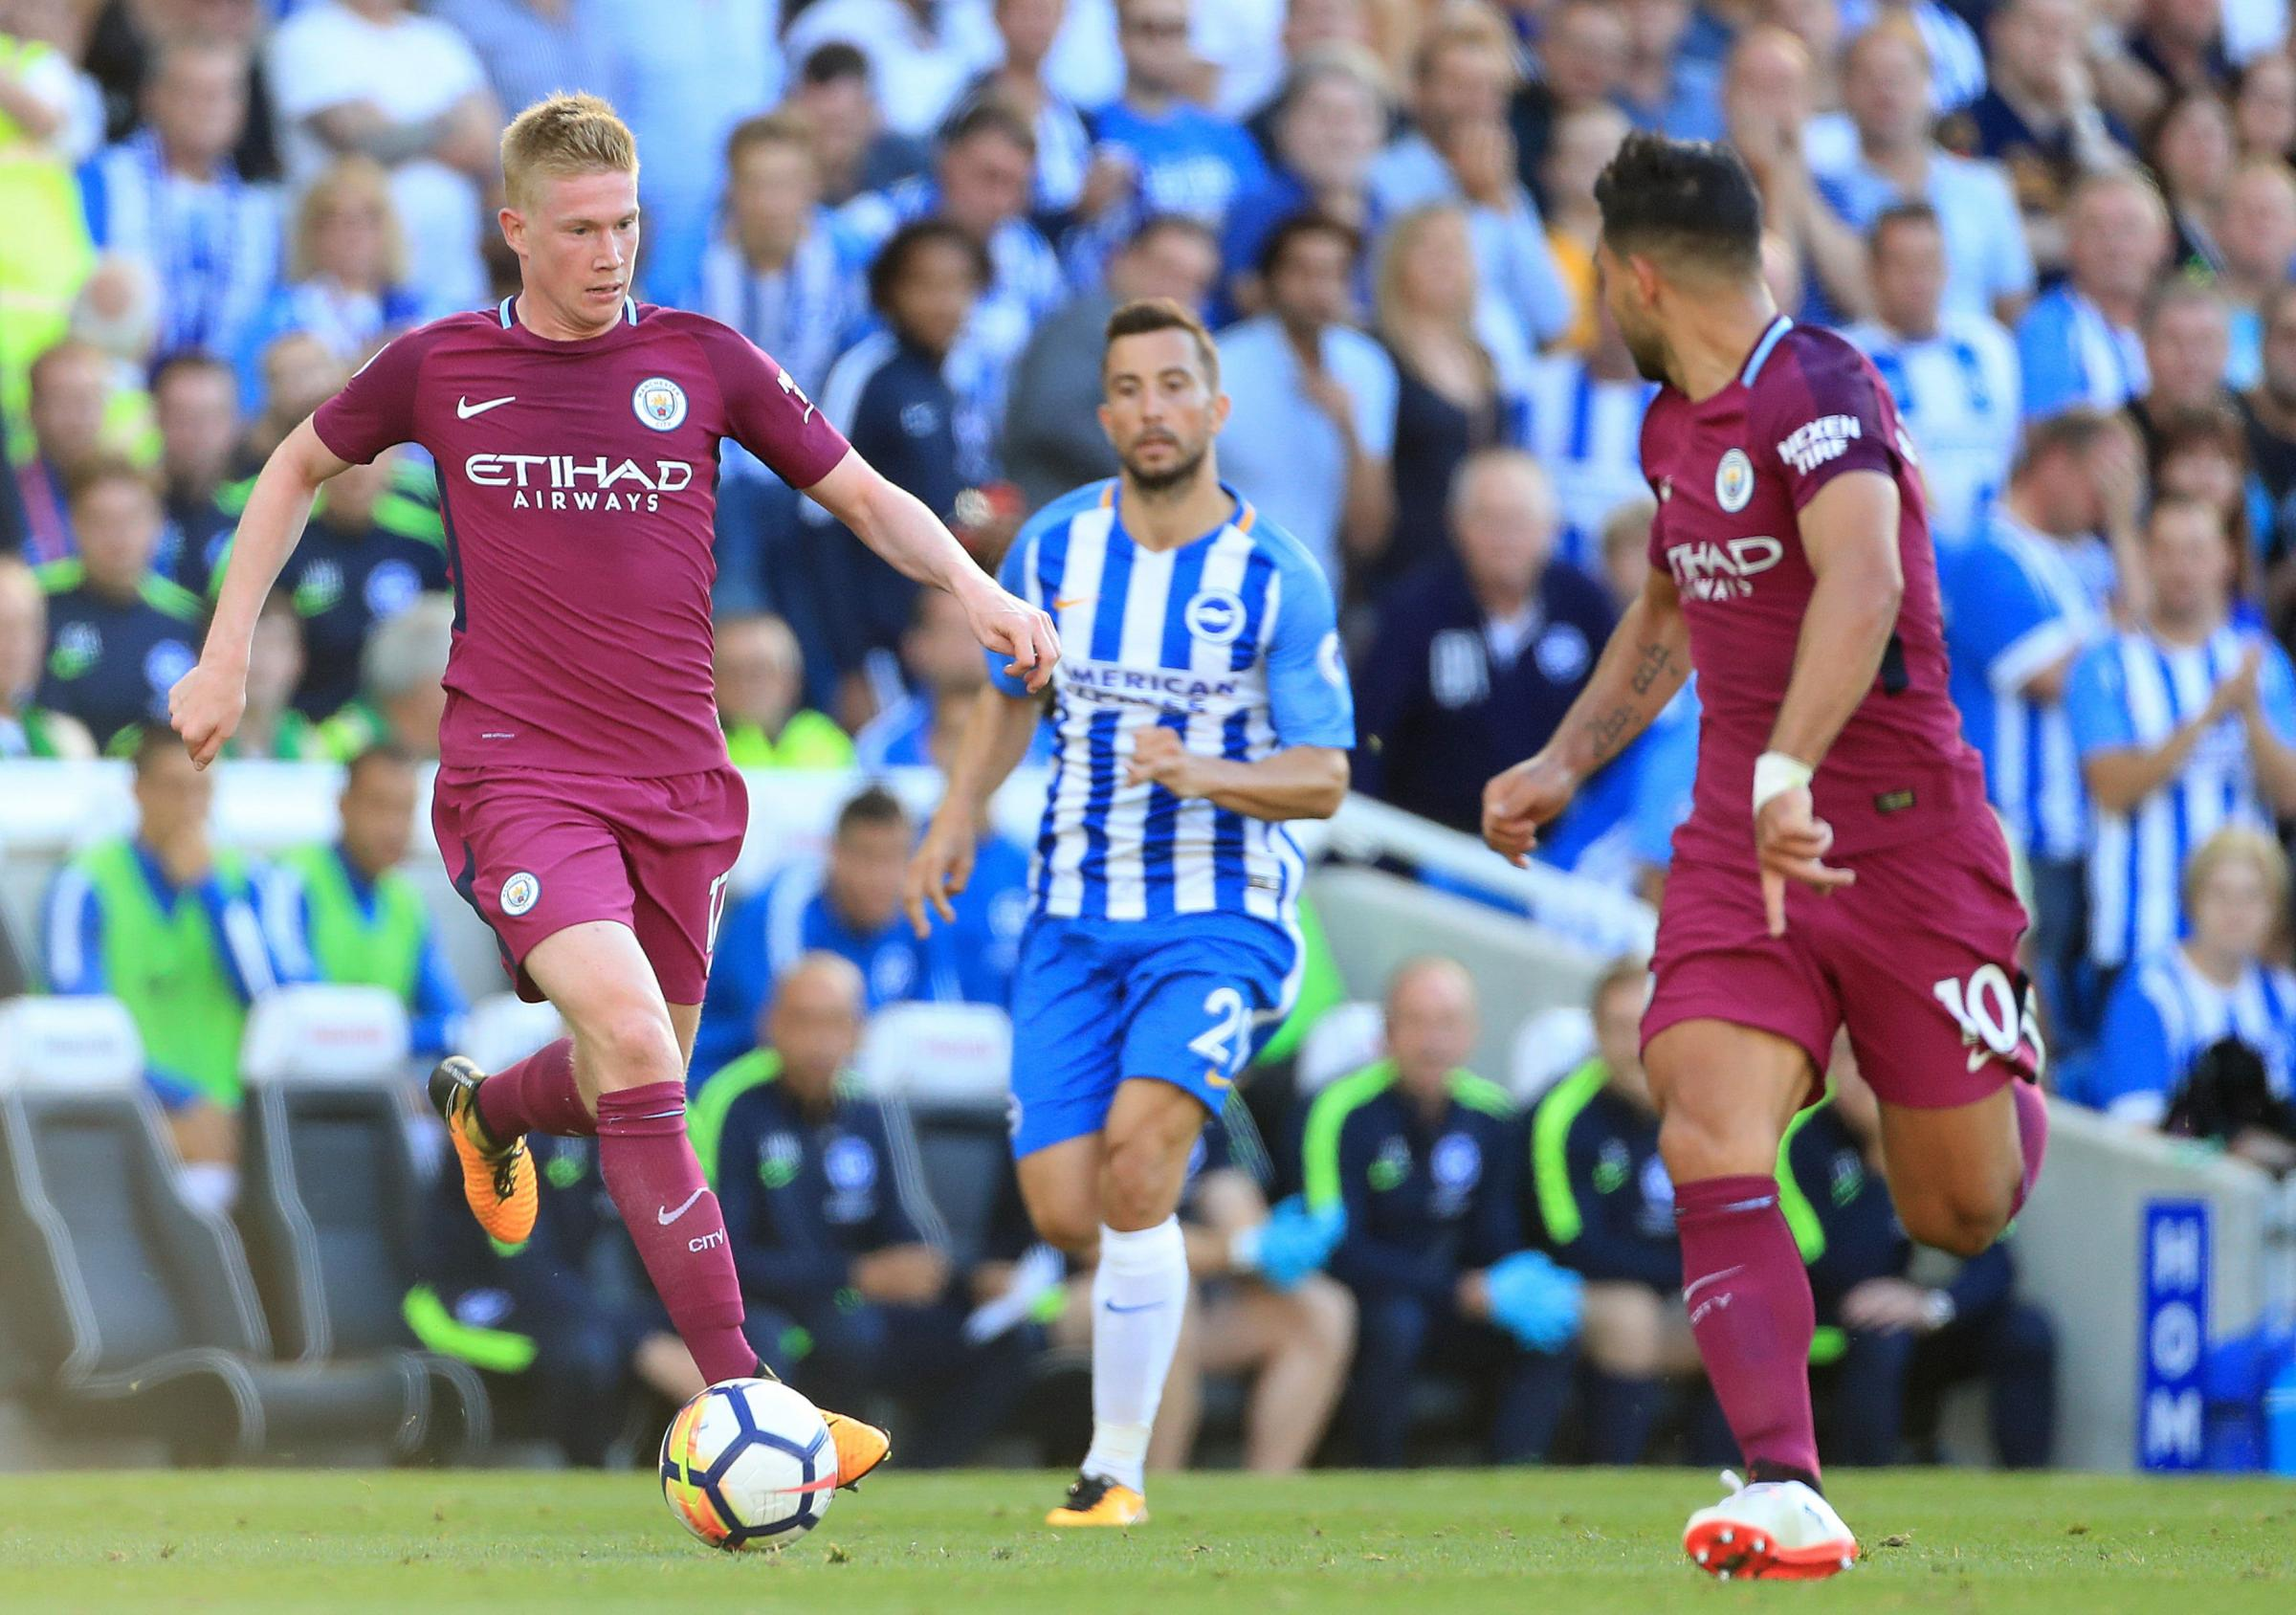 Kevin De Bruyne (left) against Albion at the Amex last season